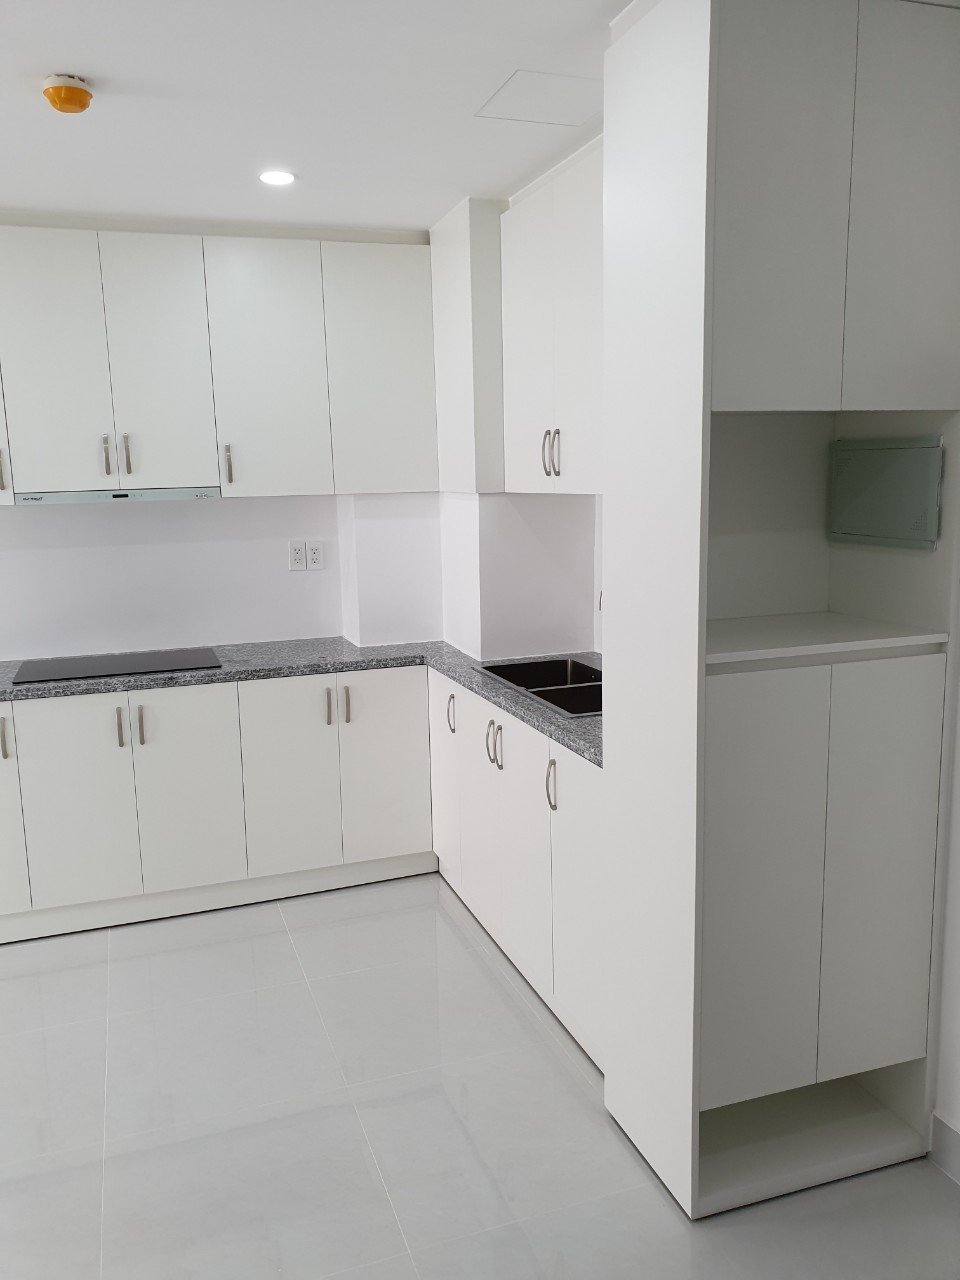 rent Saigon South Residences - 2 bedroom - 2 wc